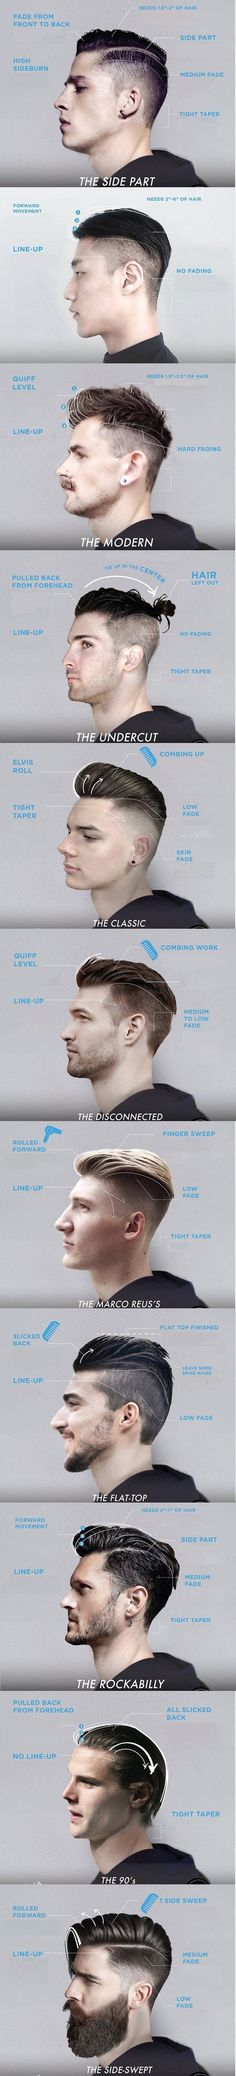 As the barbershop trend sweeps the world, men's haircuts have come full circle. Traditional meets modern is key, and here are the most popular hairstyles!